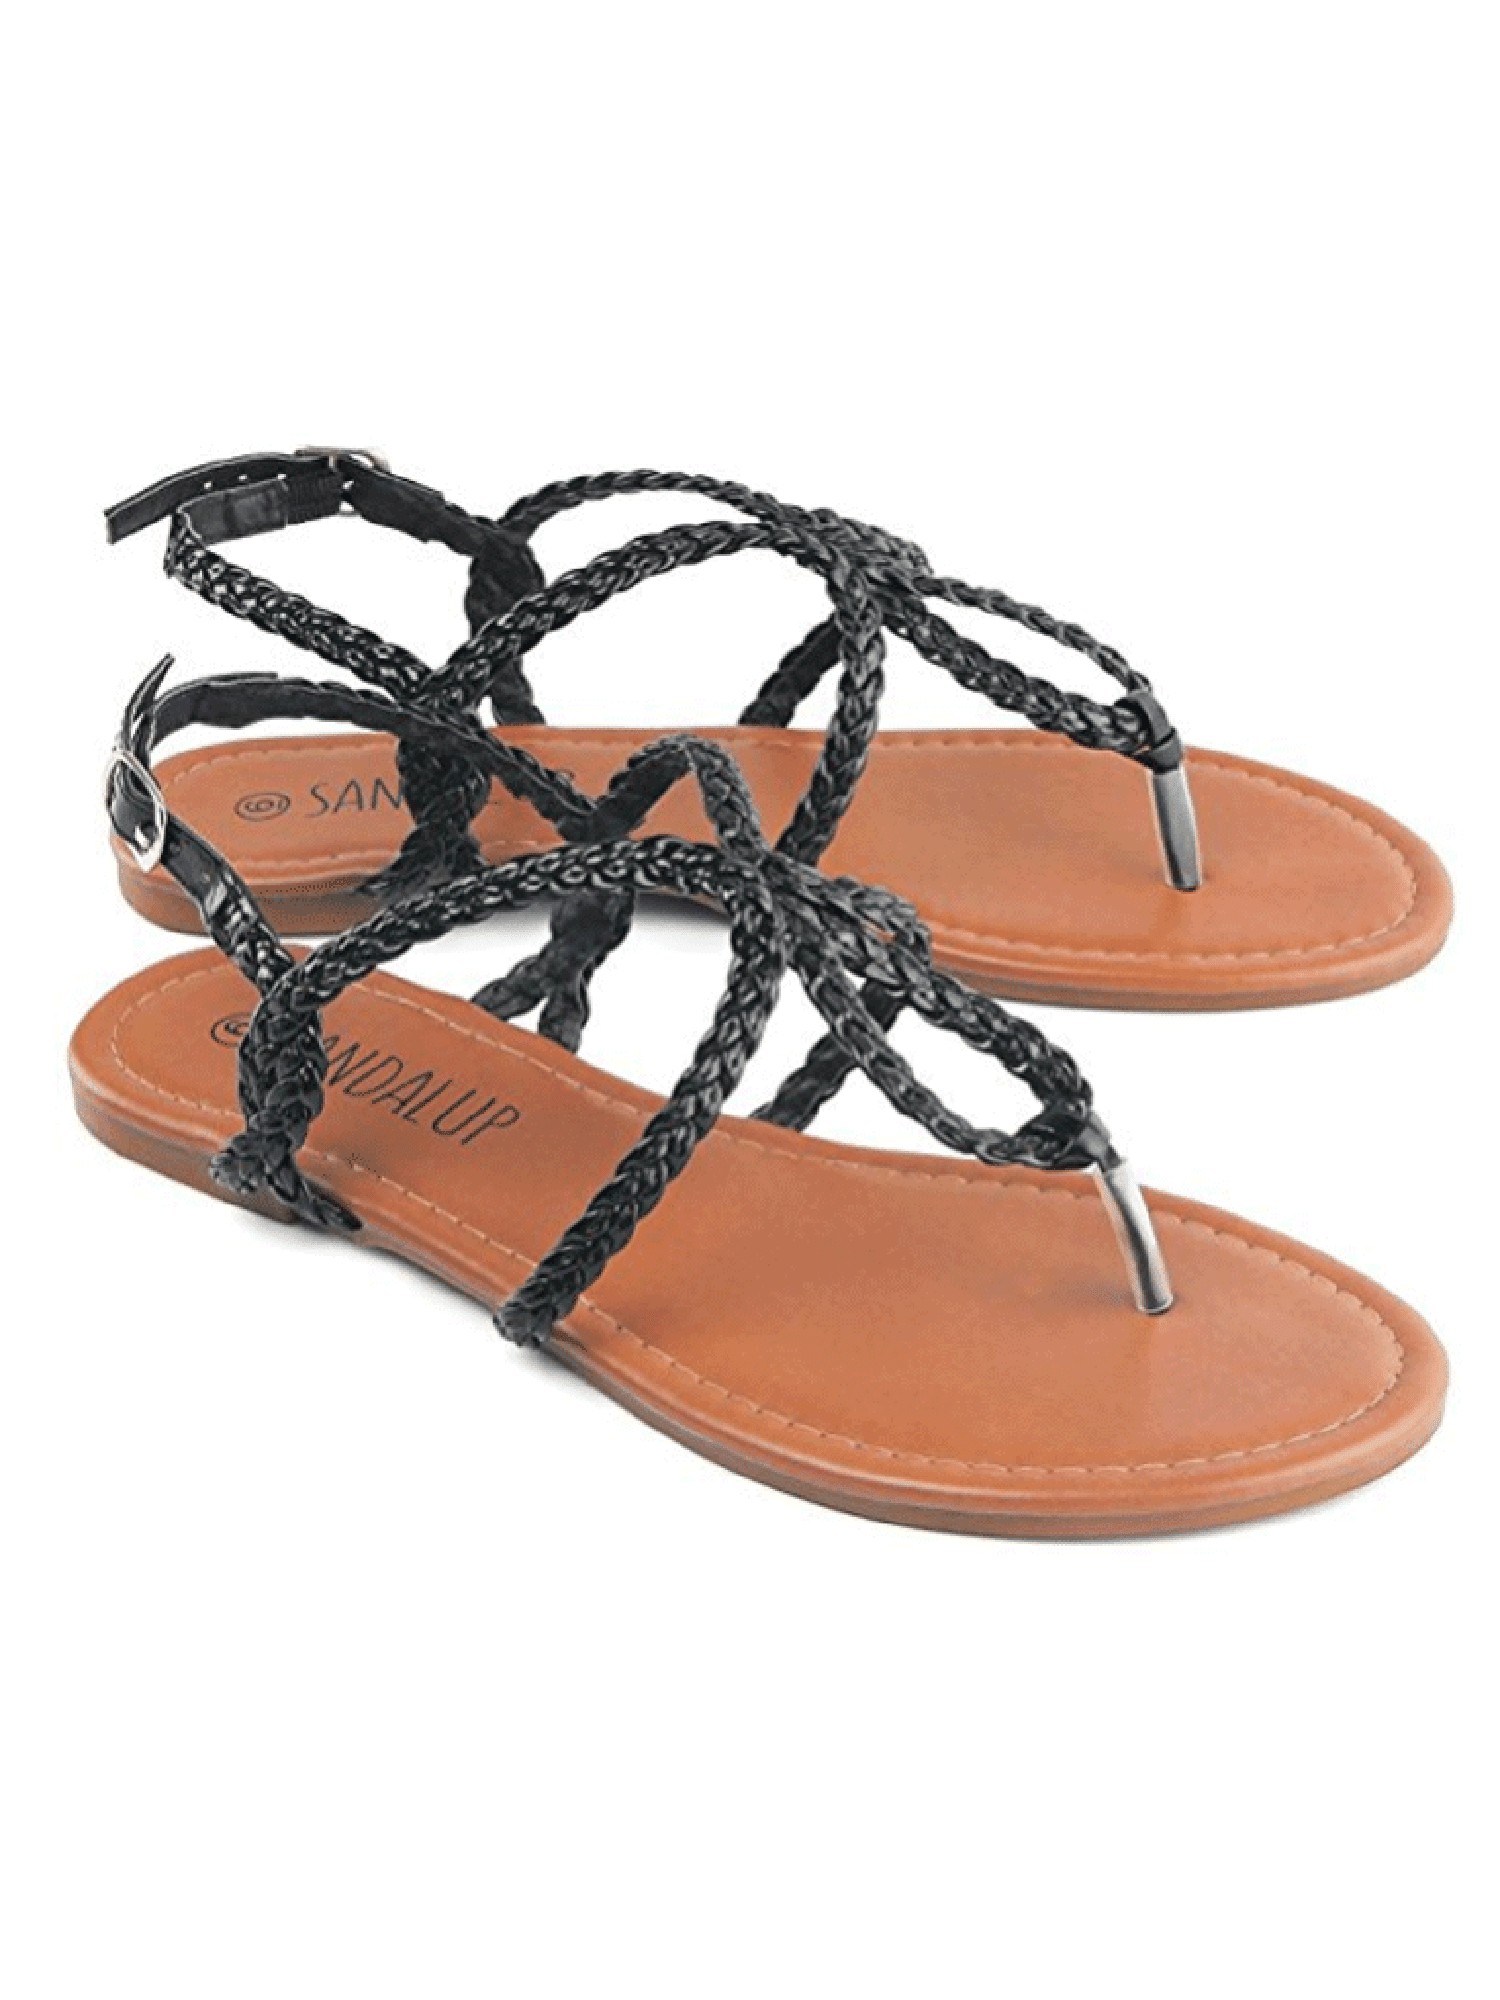 Sandalup Women Clearance Shoes, Summer Braided Gladiator -7779